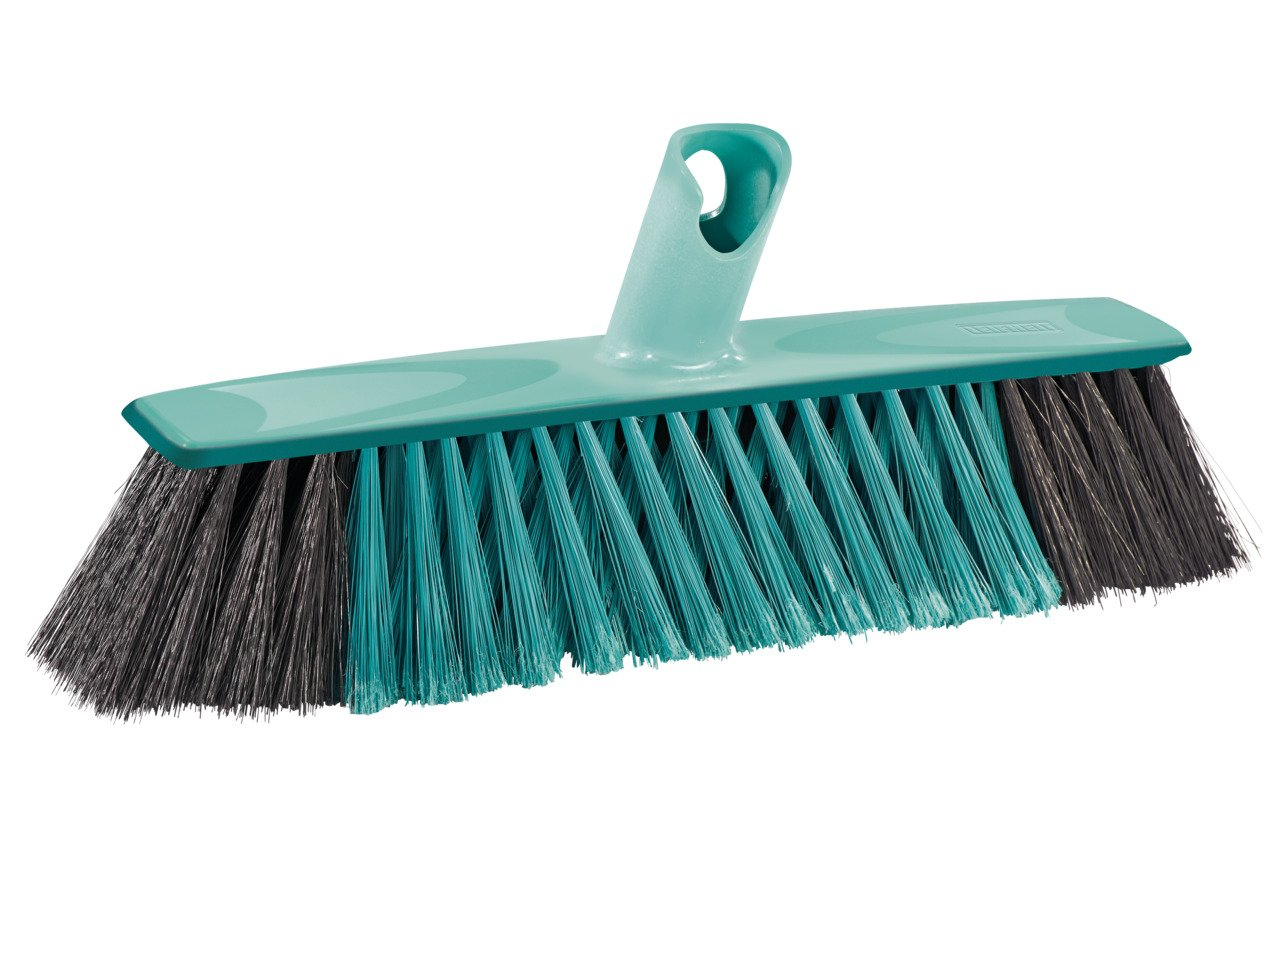 Leifheit 45032 Allround Broom Head Xtra Clean, 30 cm